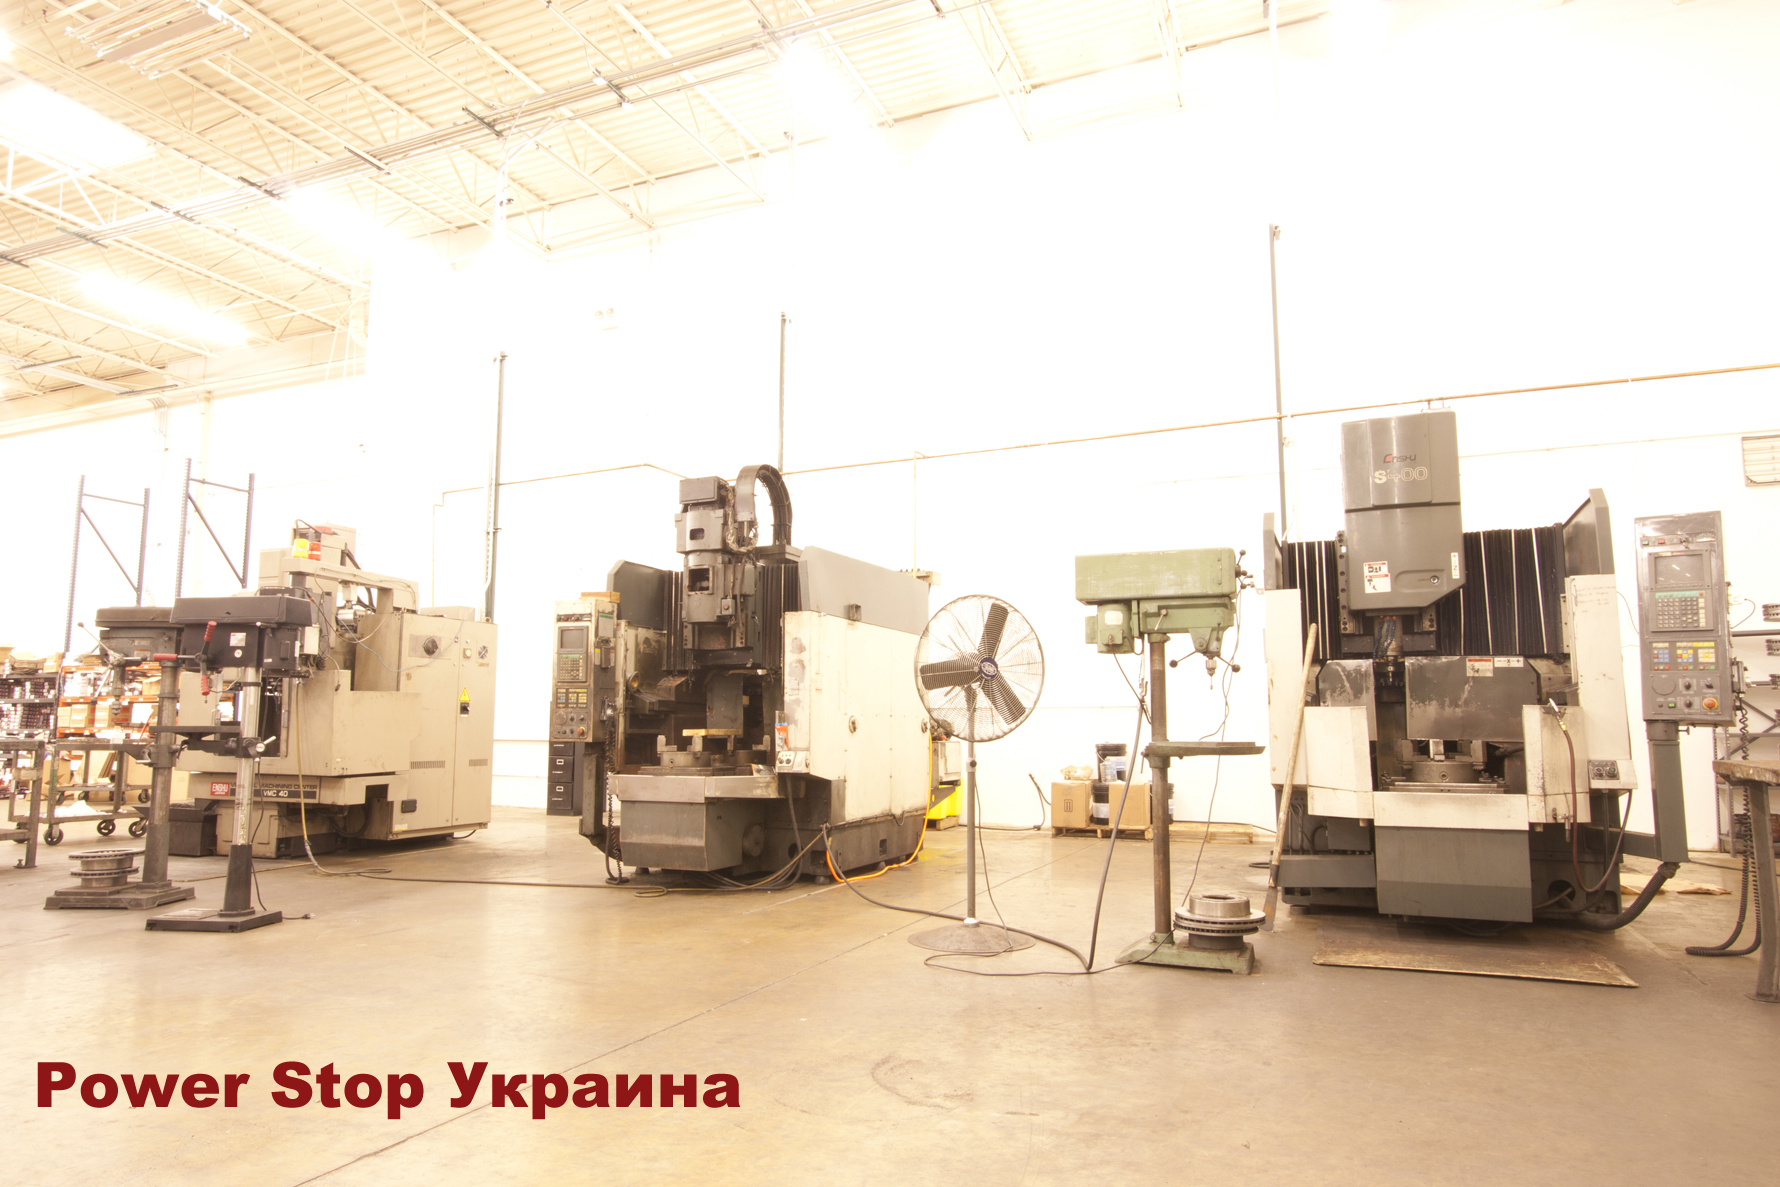 Power Stop factory